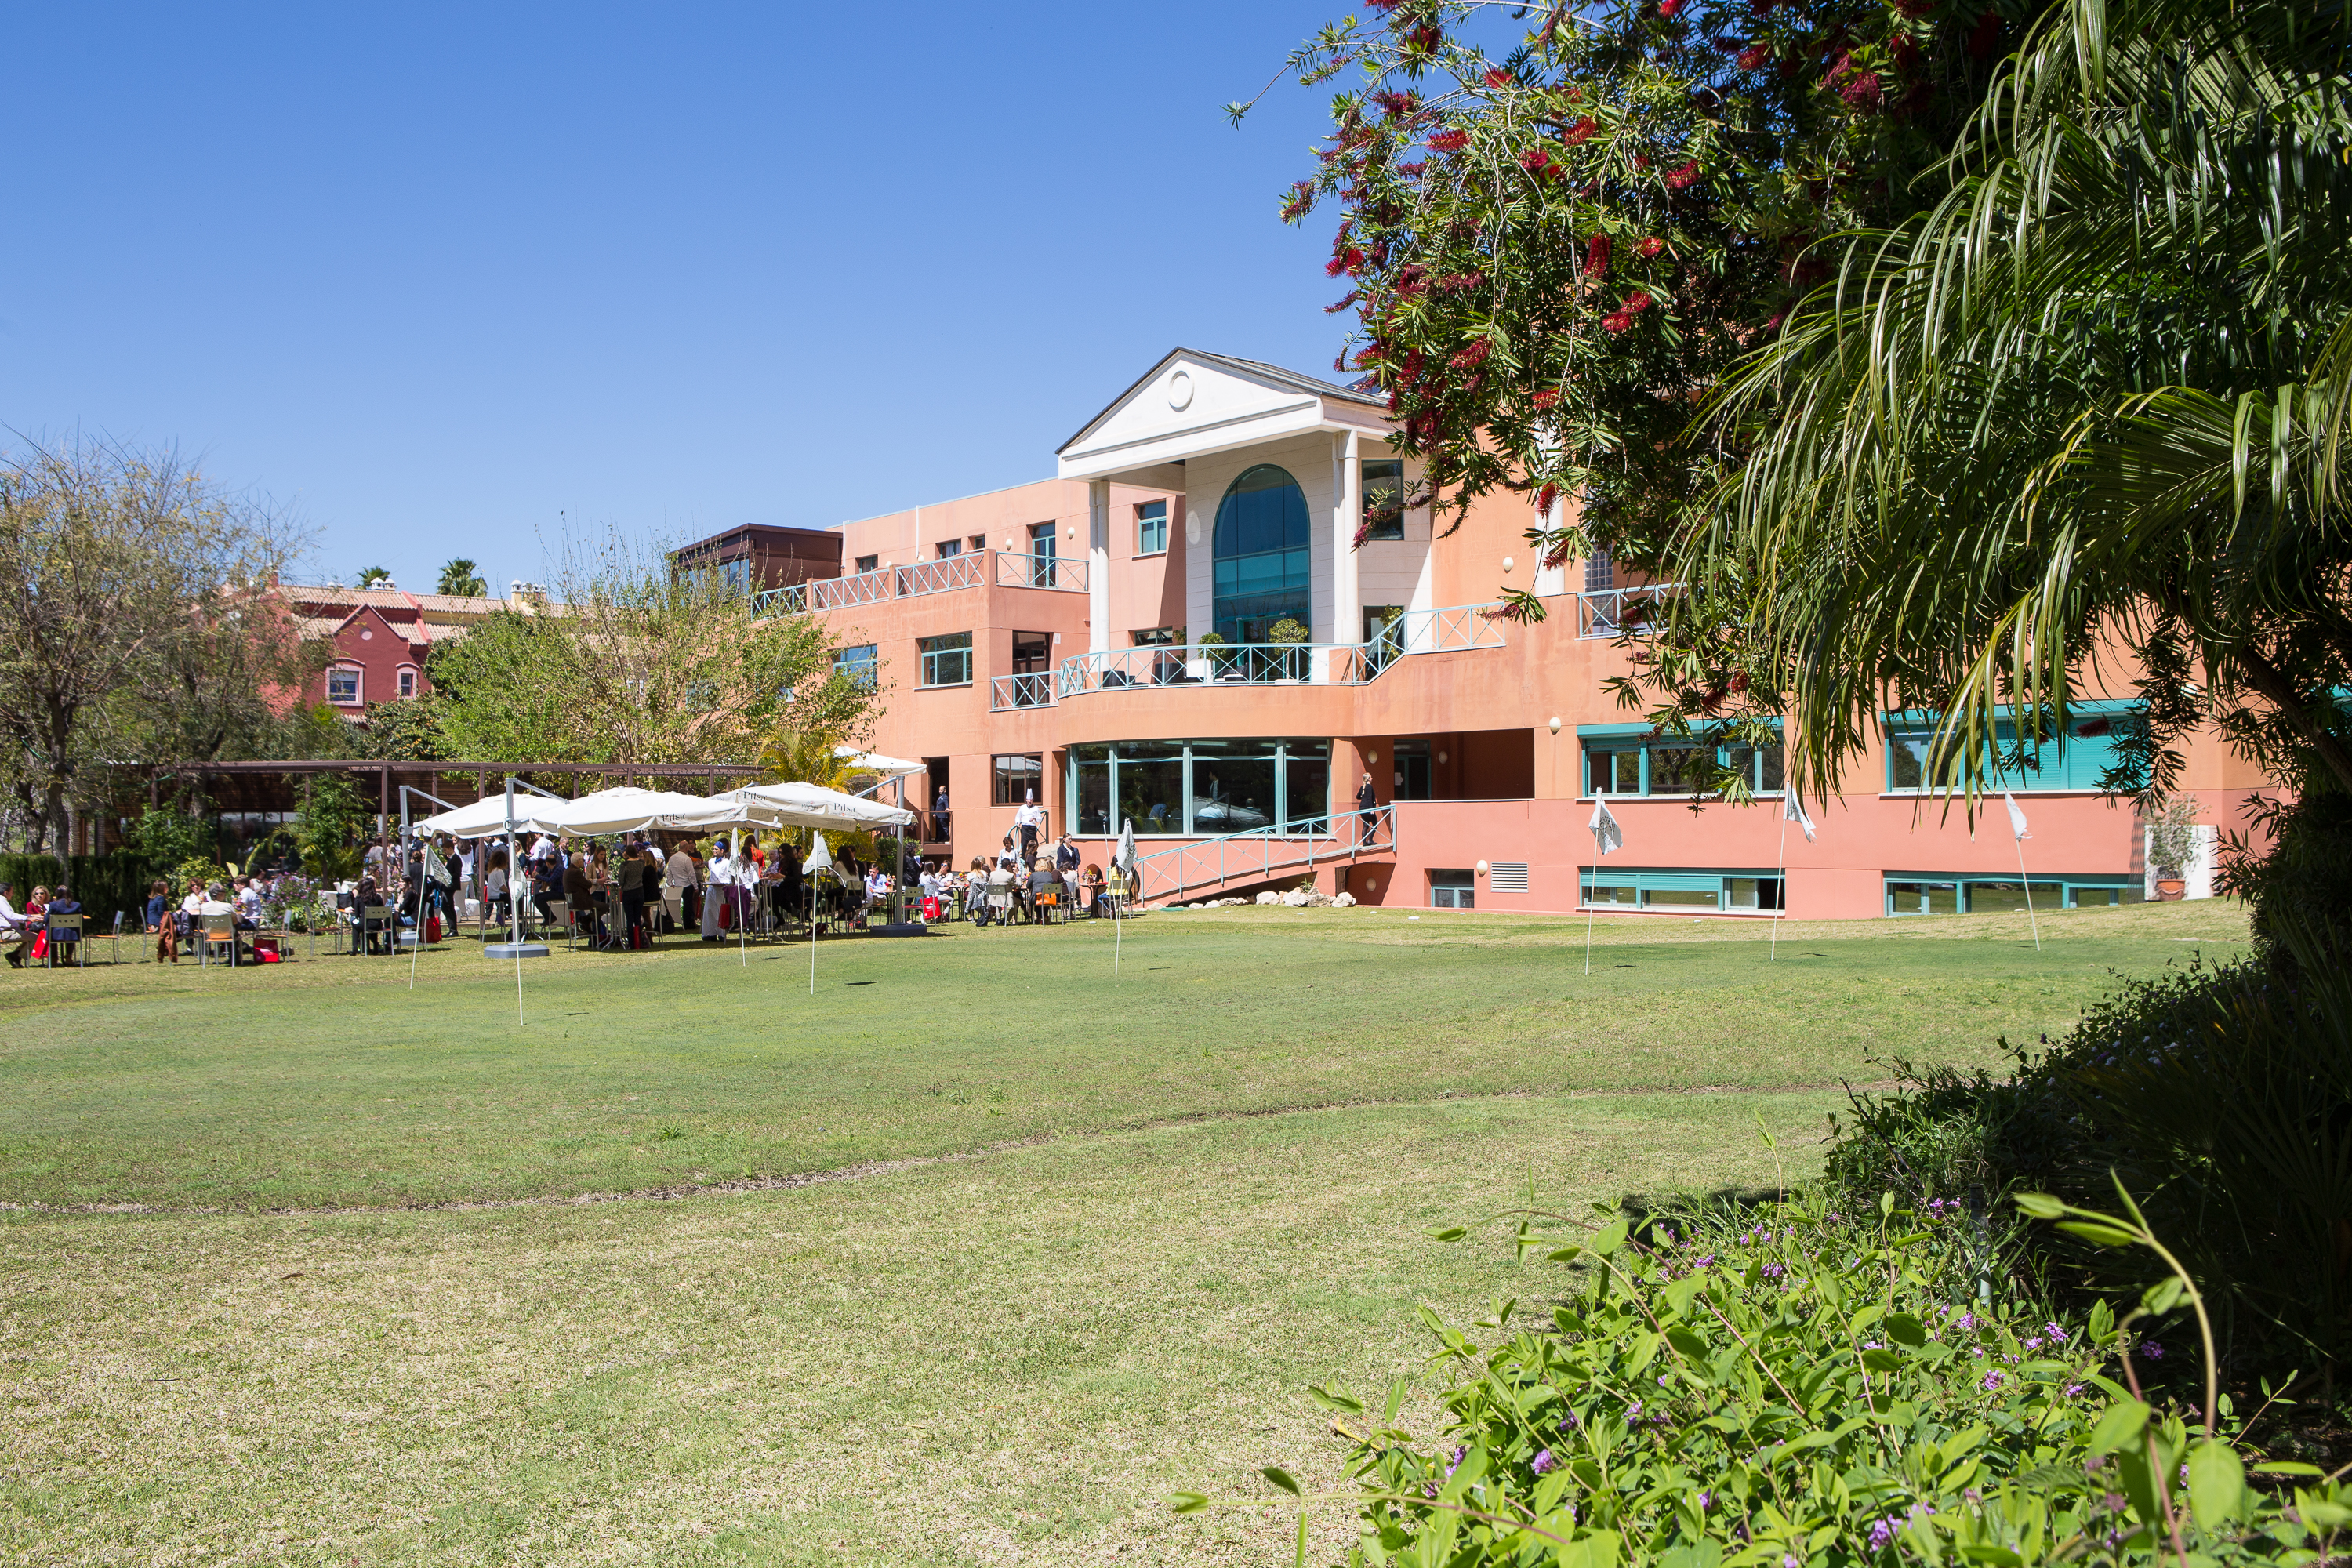 Les-Roches-Marbella-Open-Day-April-2016-7